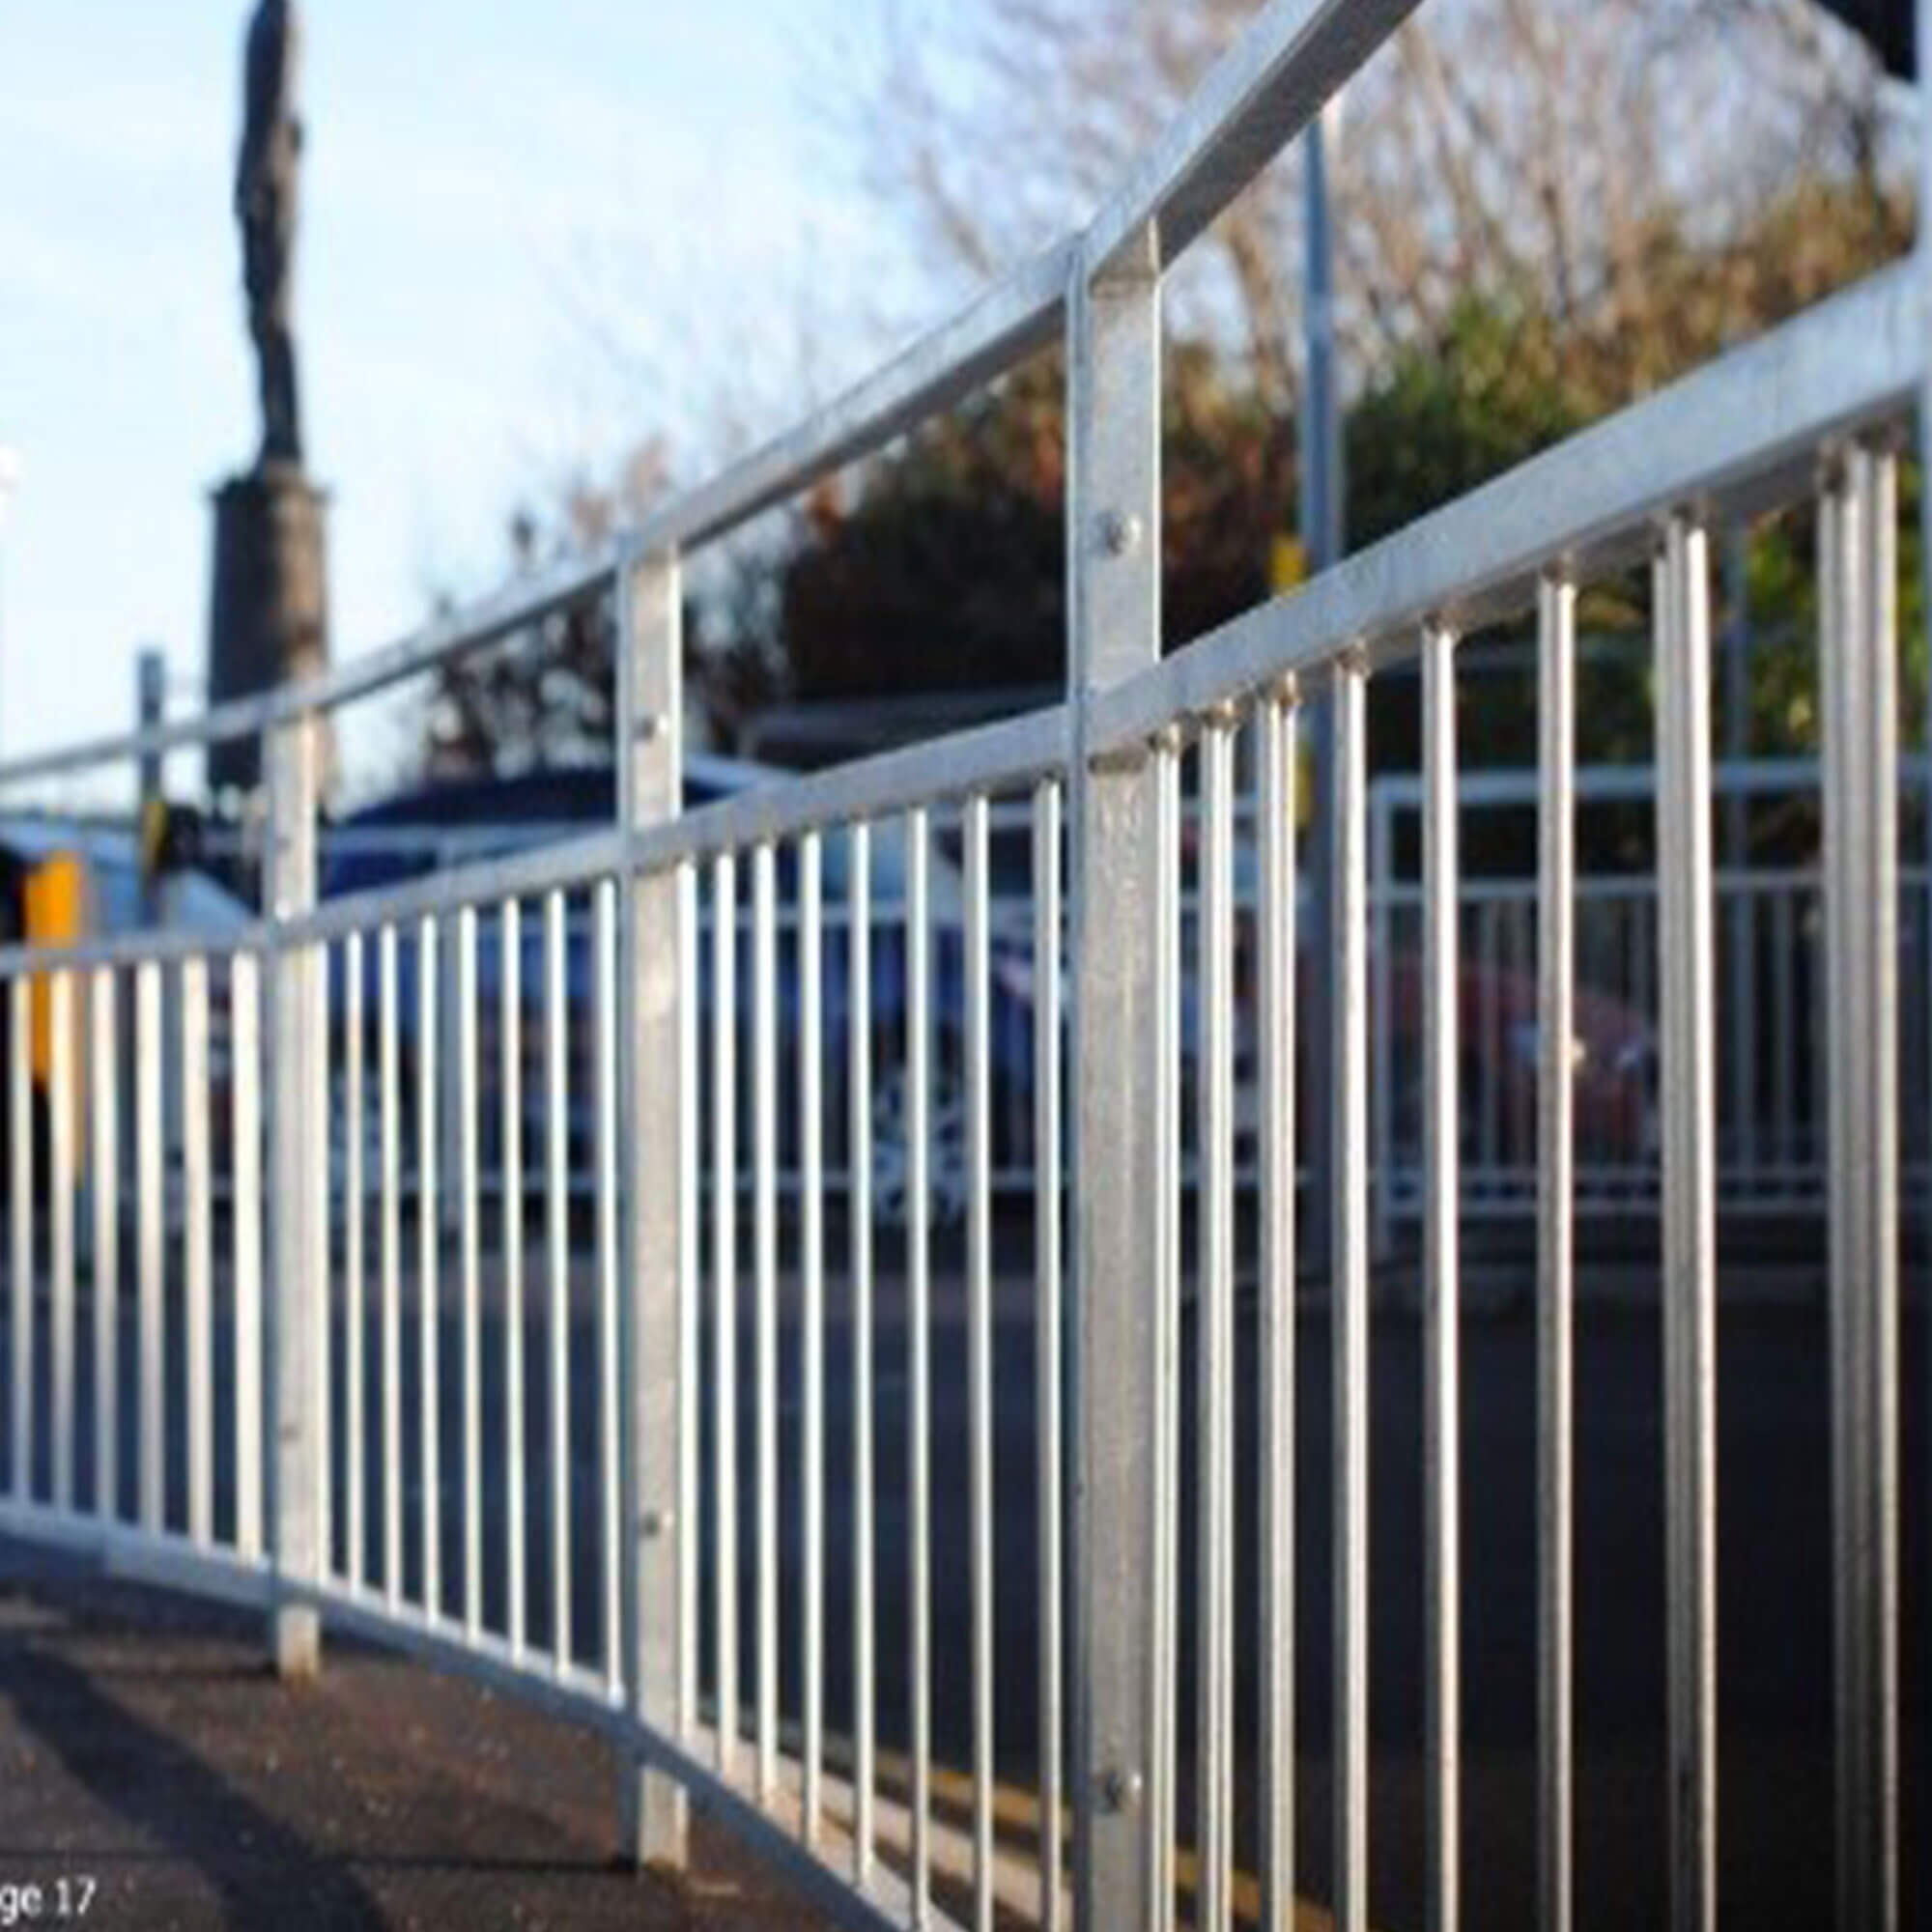 A image of a handrail that you would get beside a road crossing